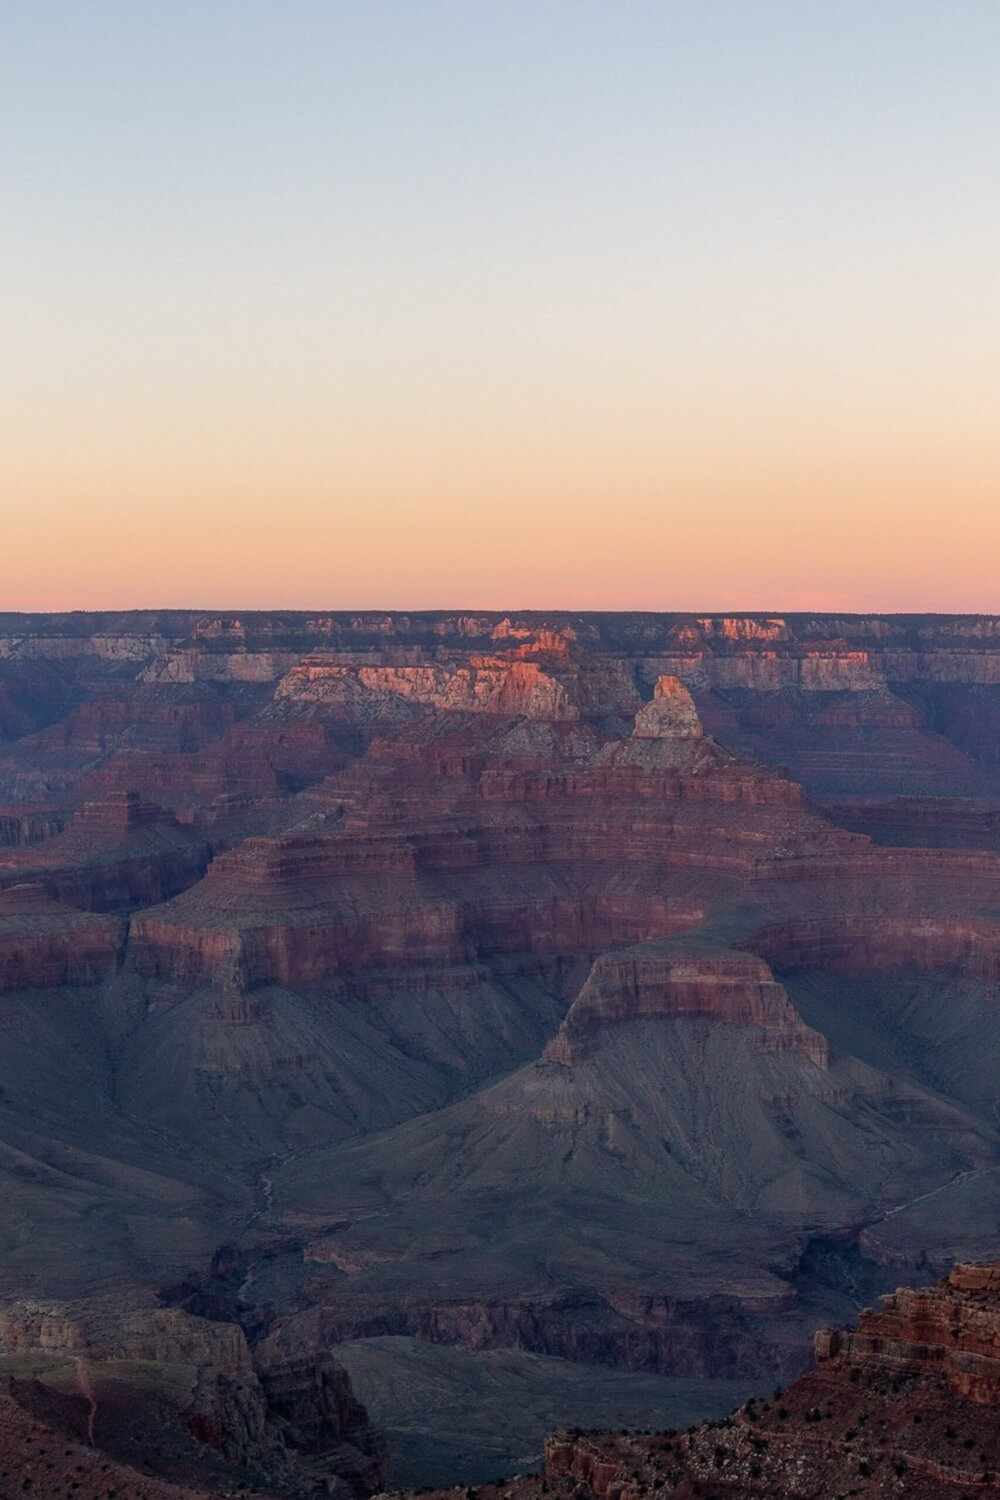 A view of the grand canyon at dusk, showing the various layers of rock.